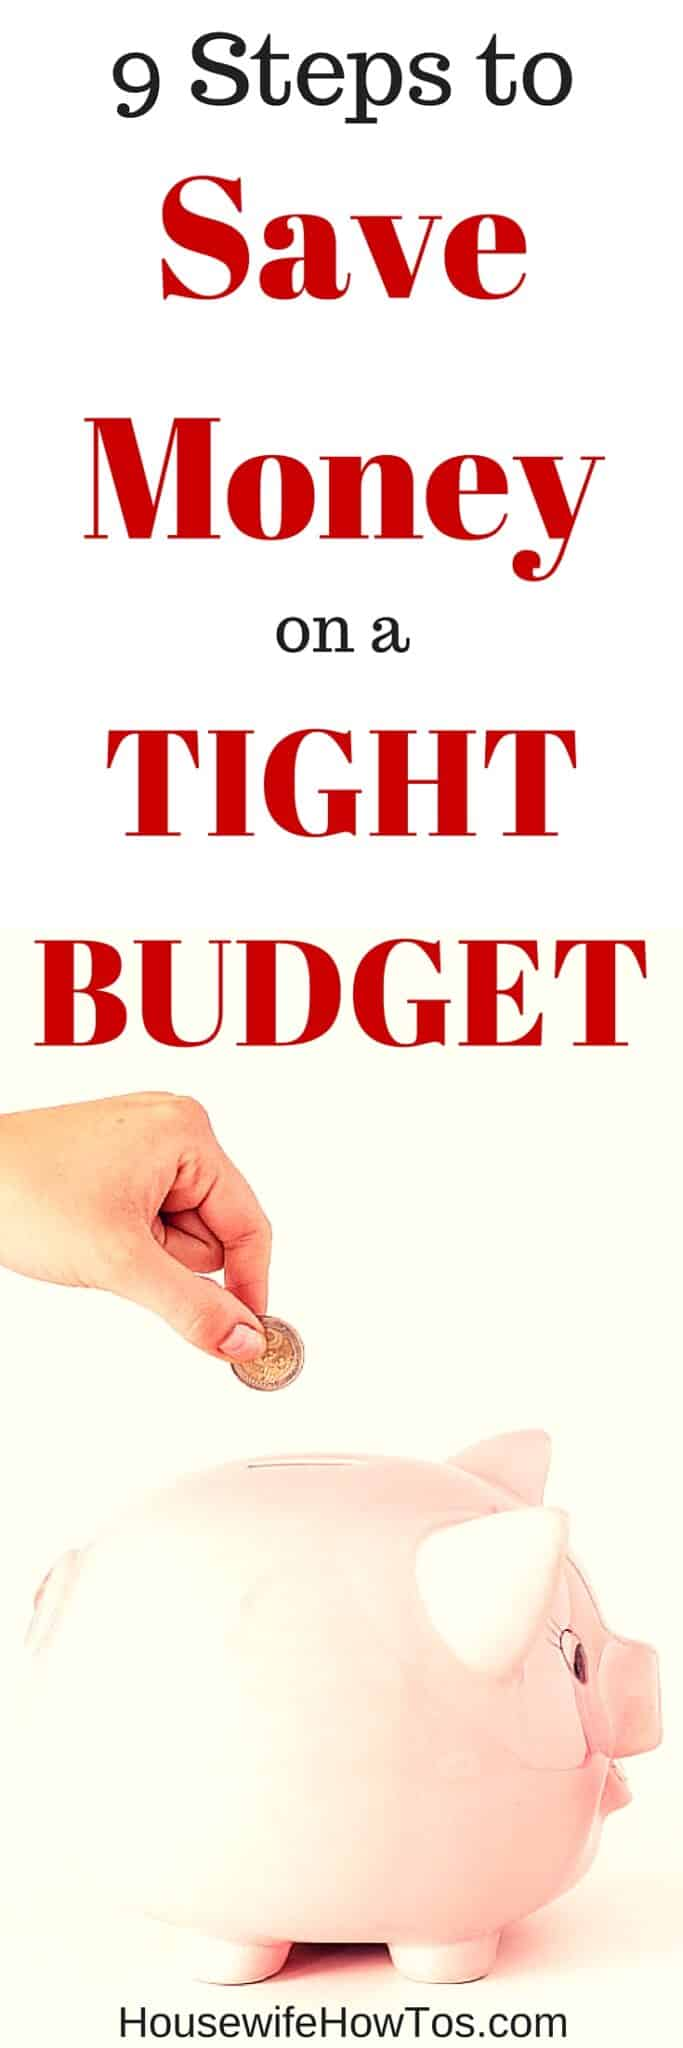 Pin 9 Steps to Save Money on a Tight Budget